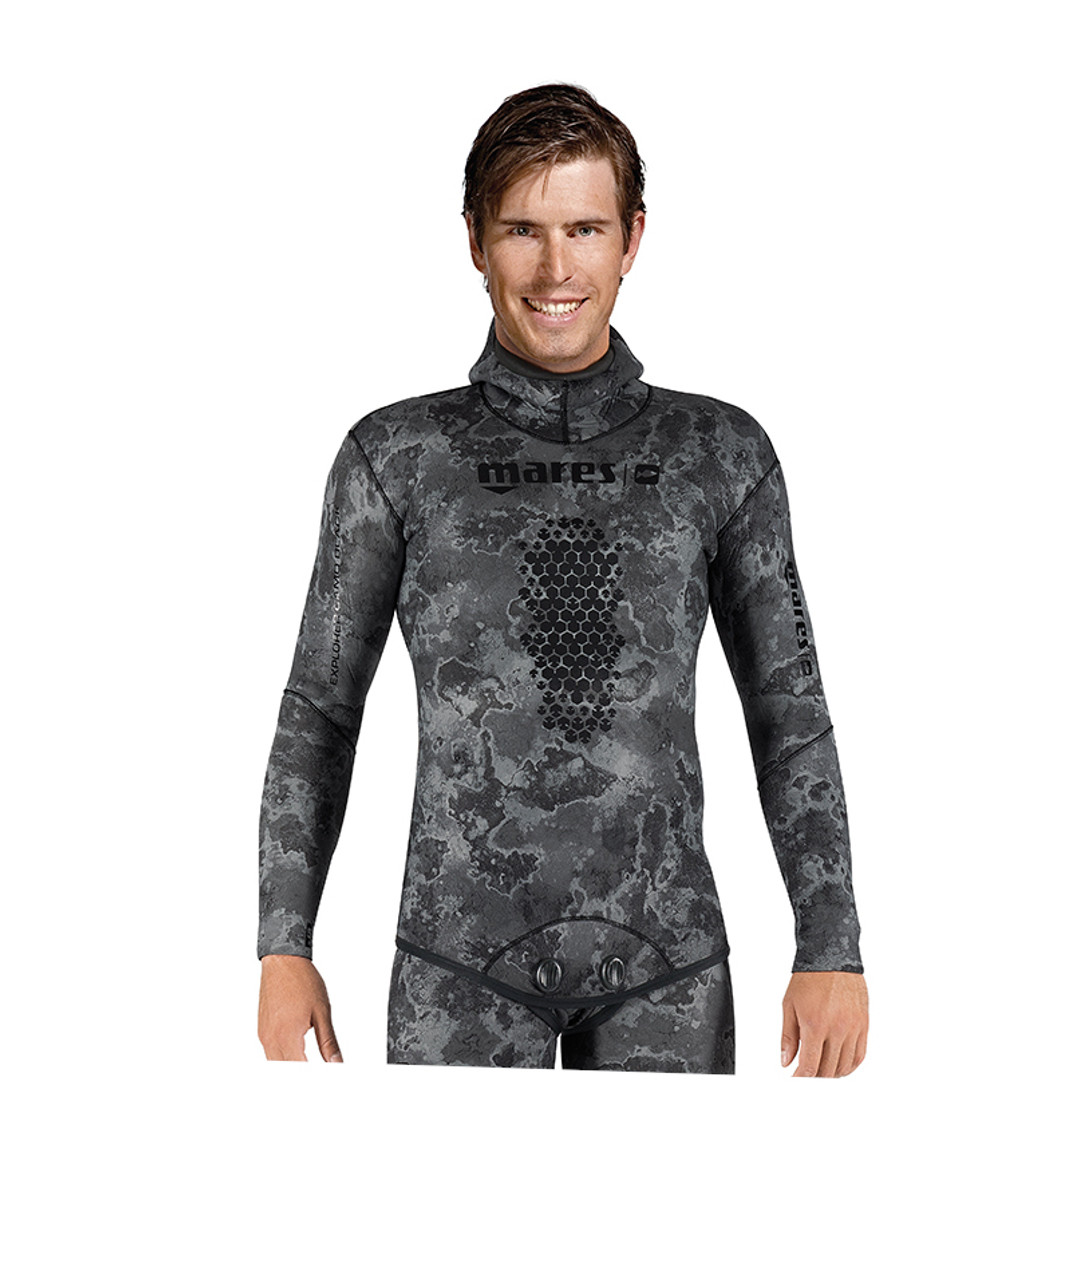 Mares 7mm Explorer Wetsuit (Jacket Only) - Freediving Scuba Diving - Black Camo